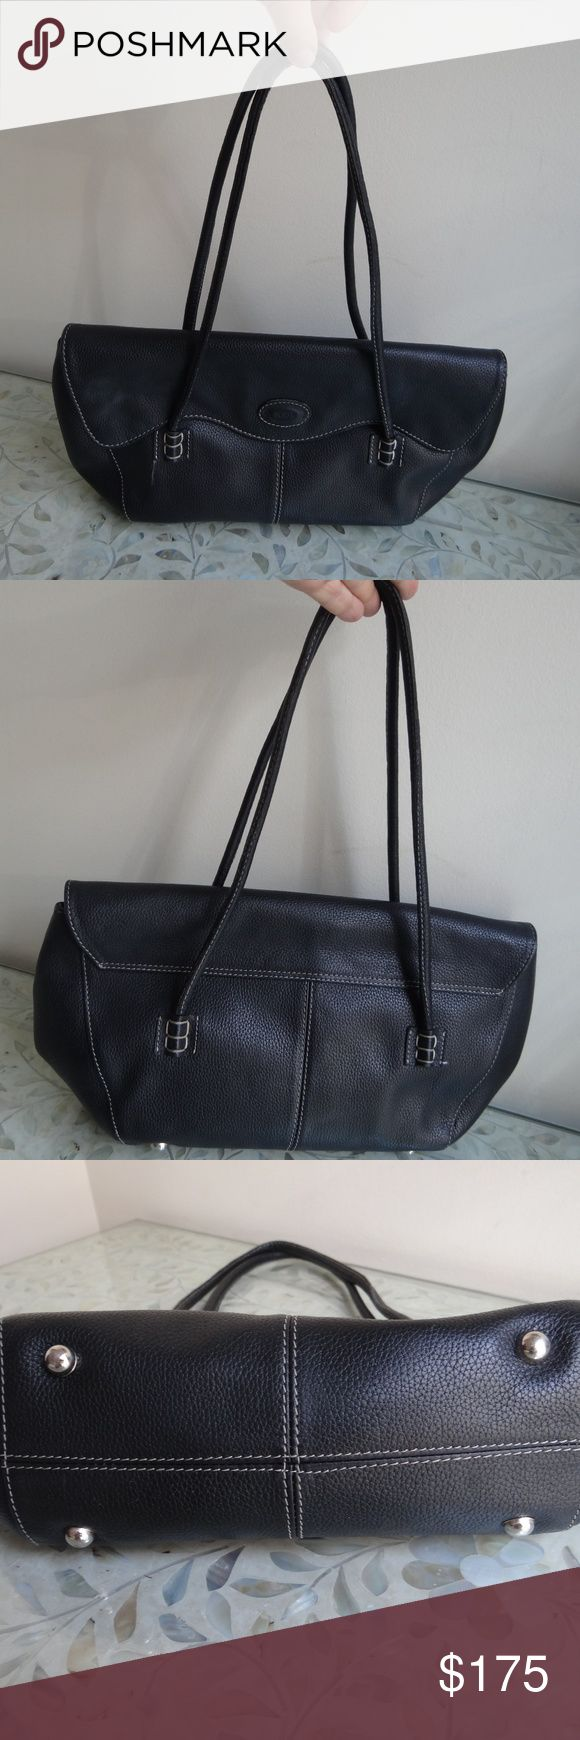 Tod's mini petite shoulder bag black Wave Bag preloved black Wave Bag mini handbag foldover close w/magnetic clasp, 1 interior zipped compartment contrast white stitching no dustbag offers are welcome comes from a smoke- and pet-free home Tod's Bags Shoulder Bags